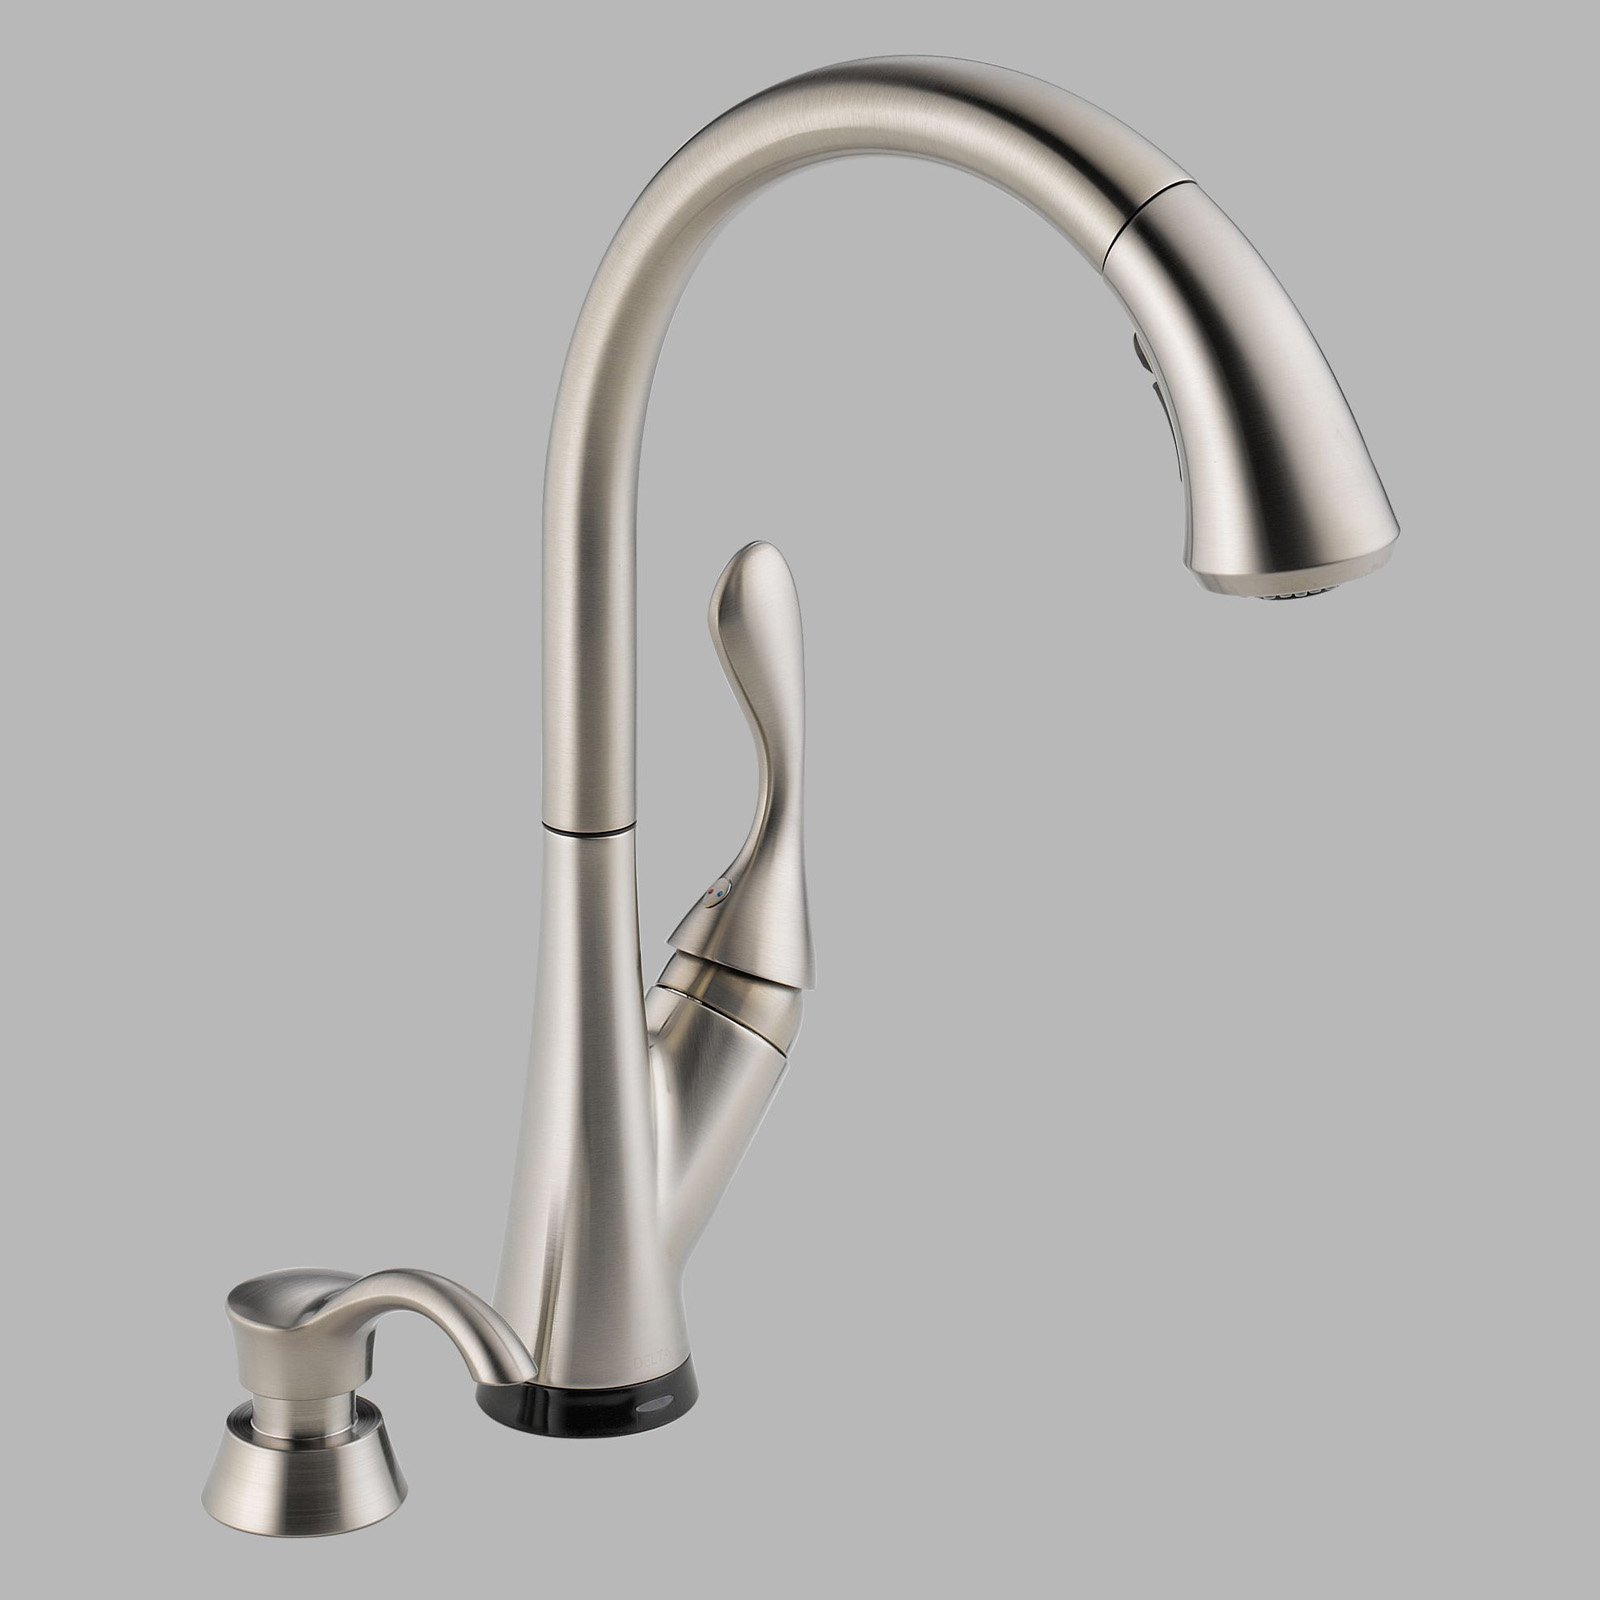 moen kitchen faucet parts different types of countertops touch control | ideas